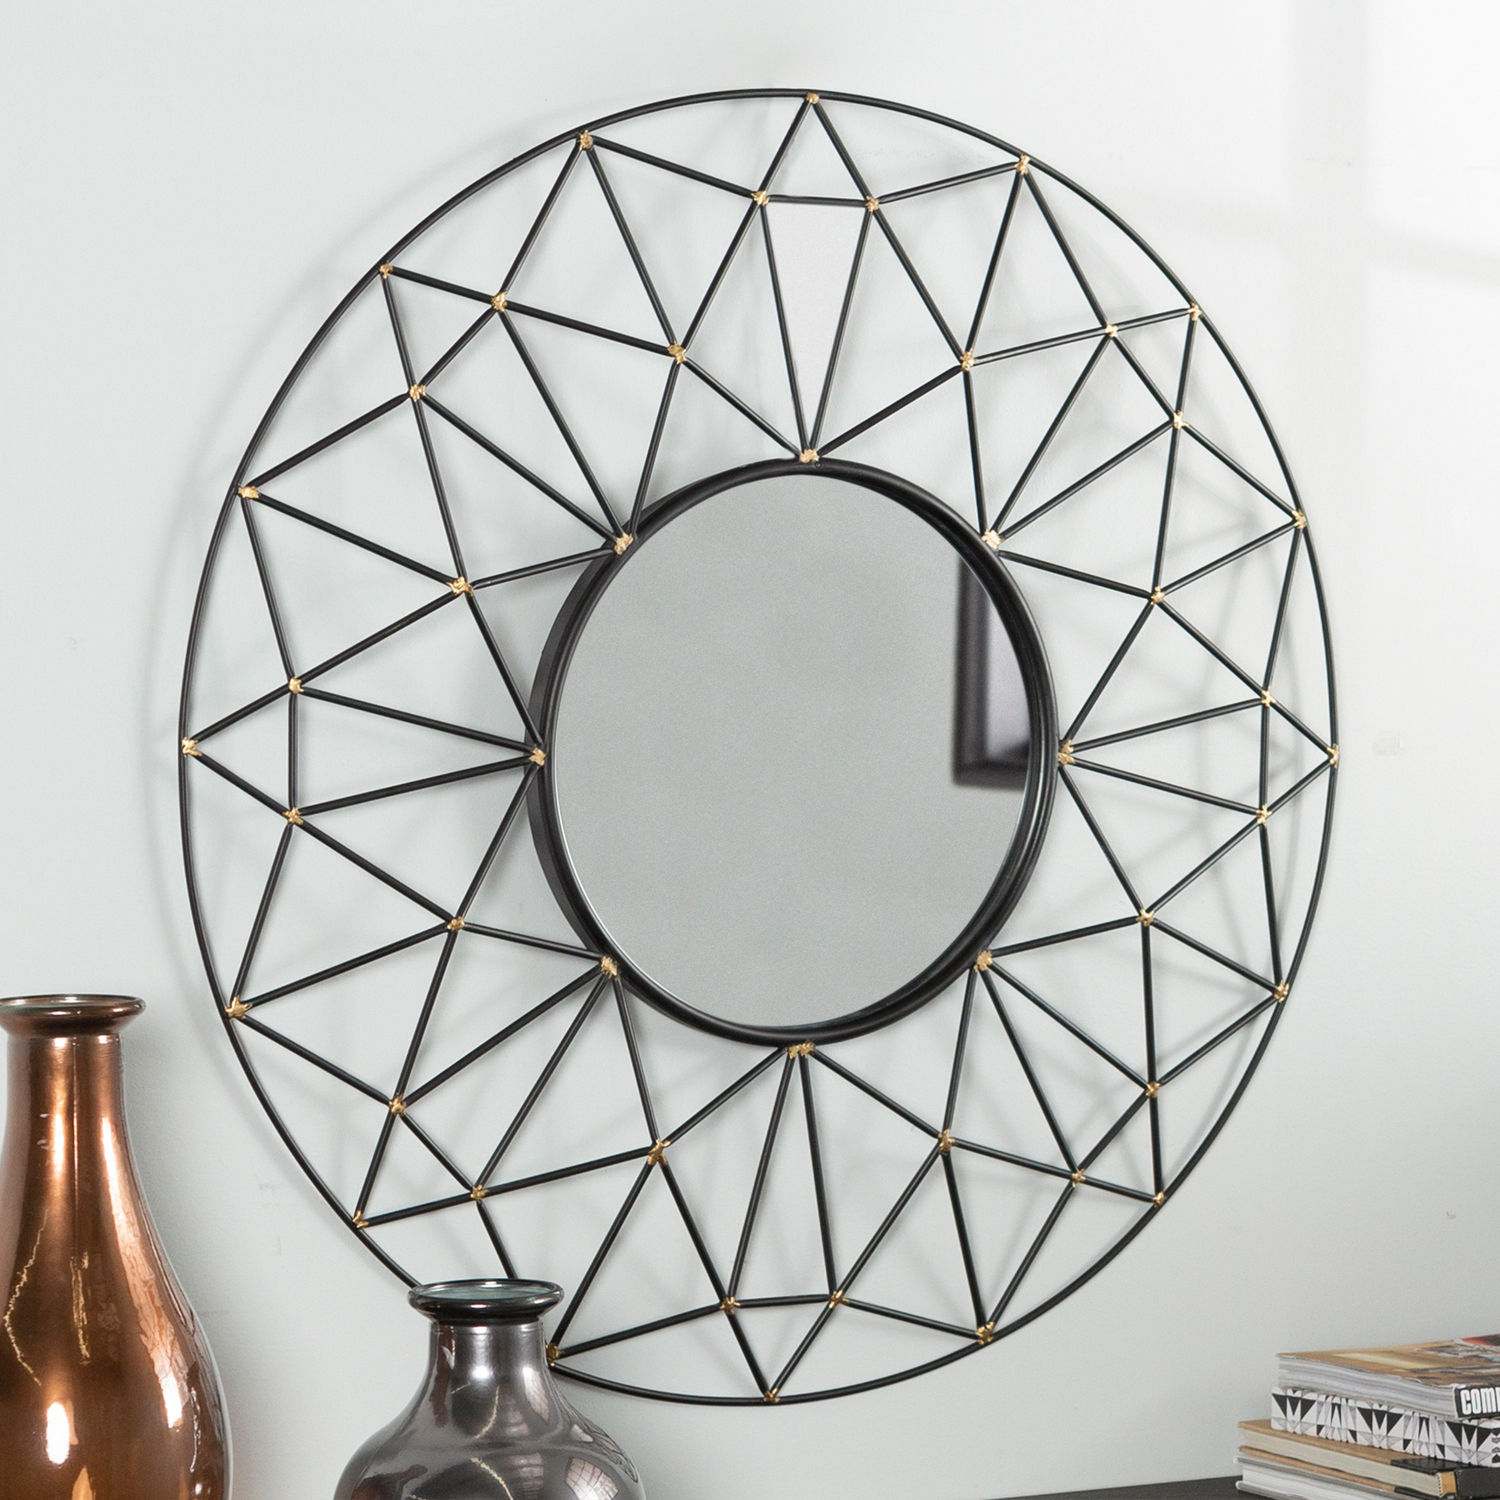 Round Geometric Frame Mirror with Gold Accents